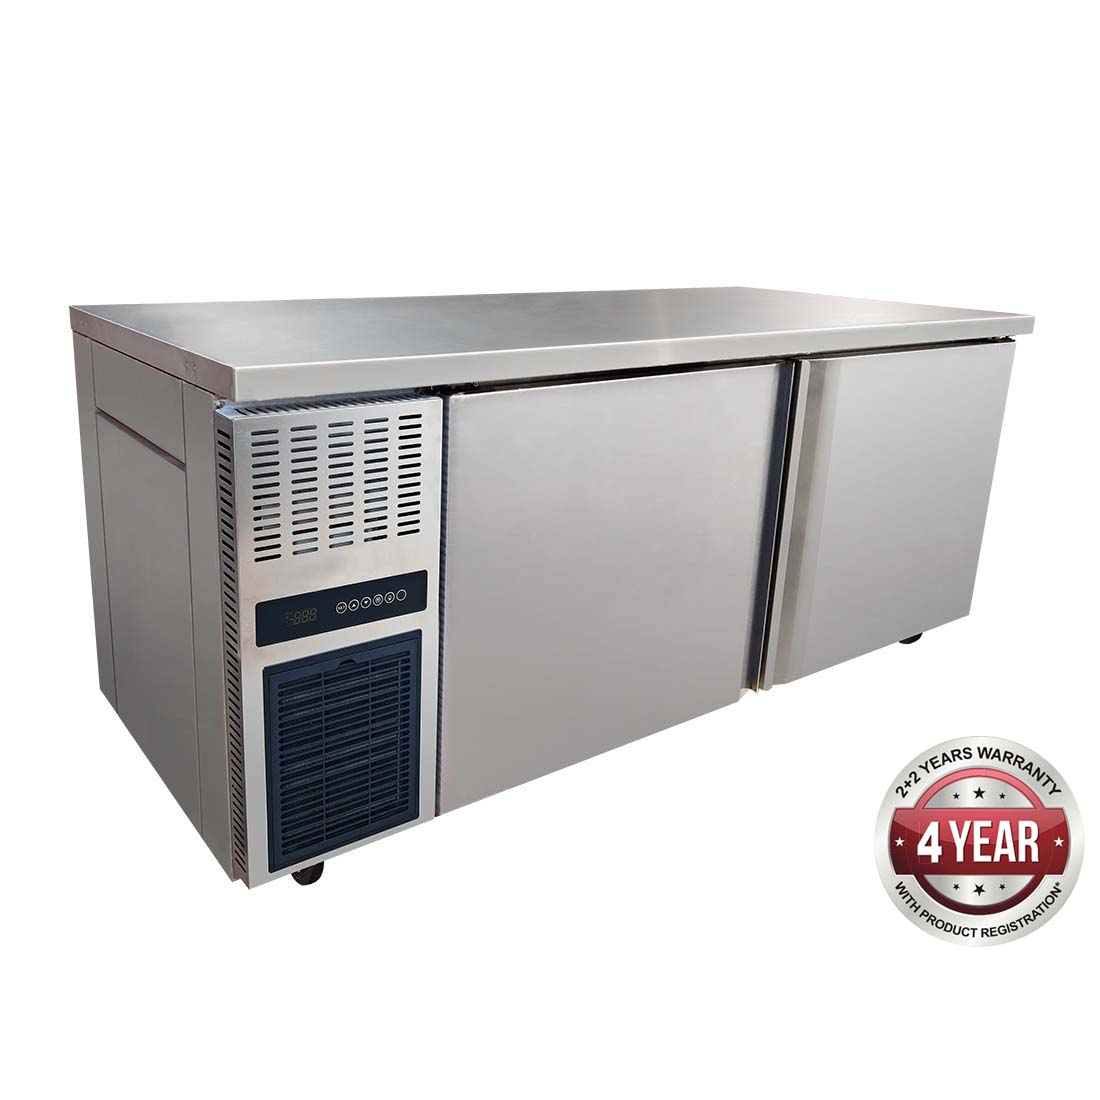 Stainless Steel Double Door Workbench Freezer - TS1800BT